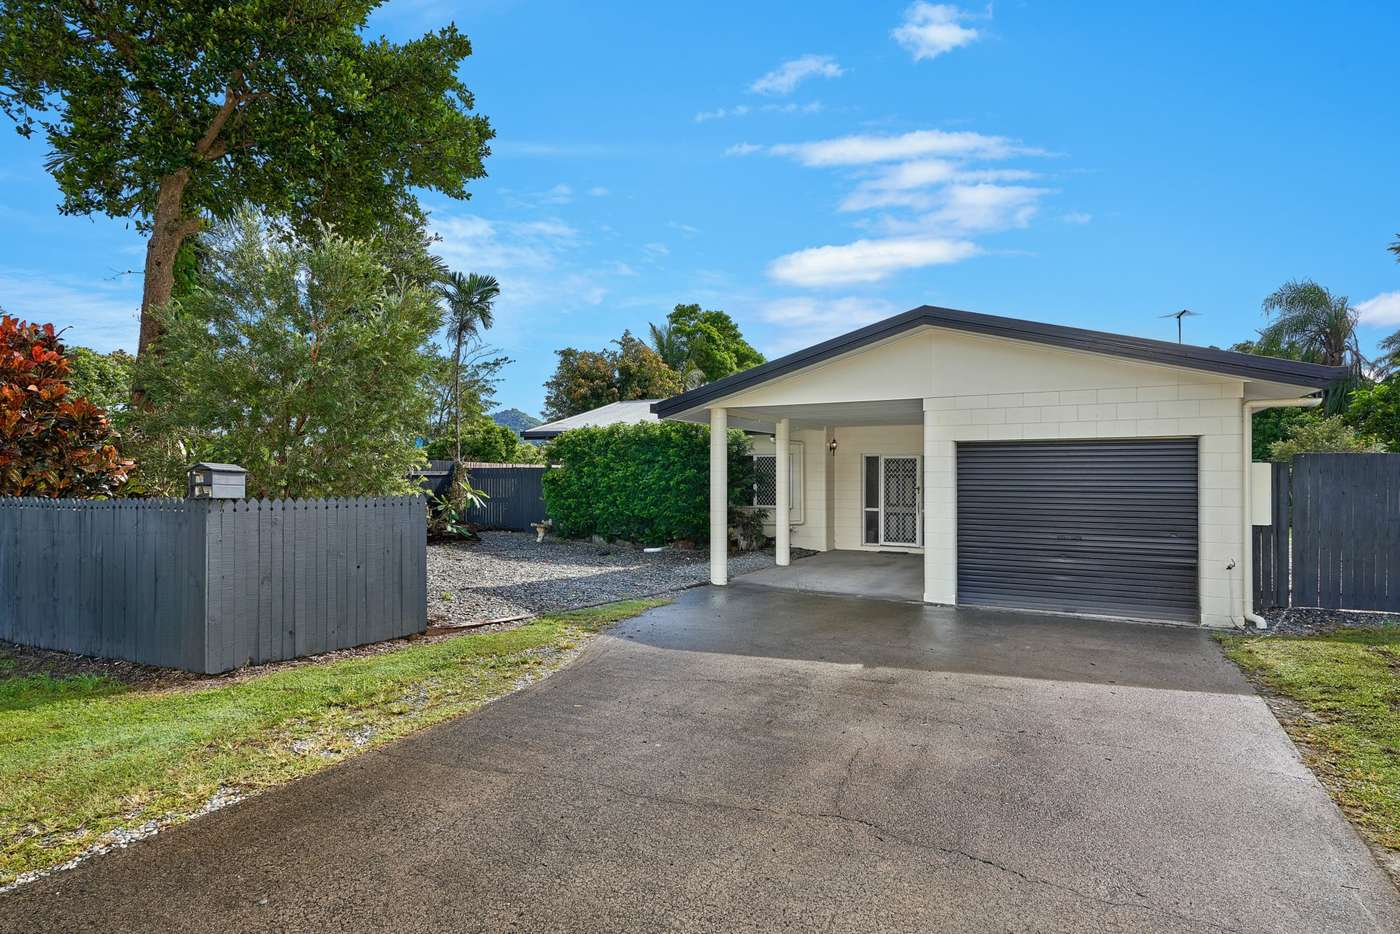 Main view of Homely house listing, 48 Sidlaw Street, Smithfield QLD 4878